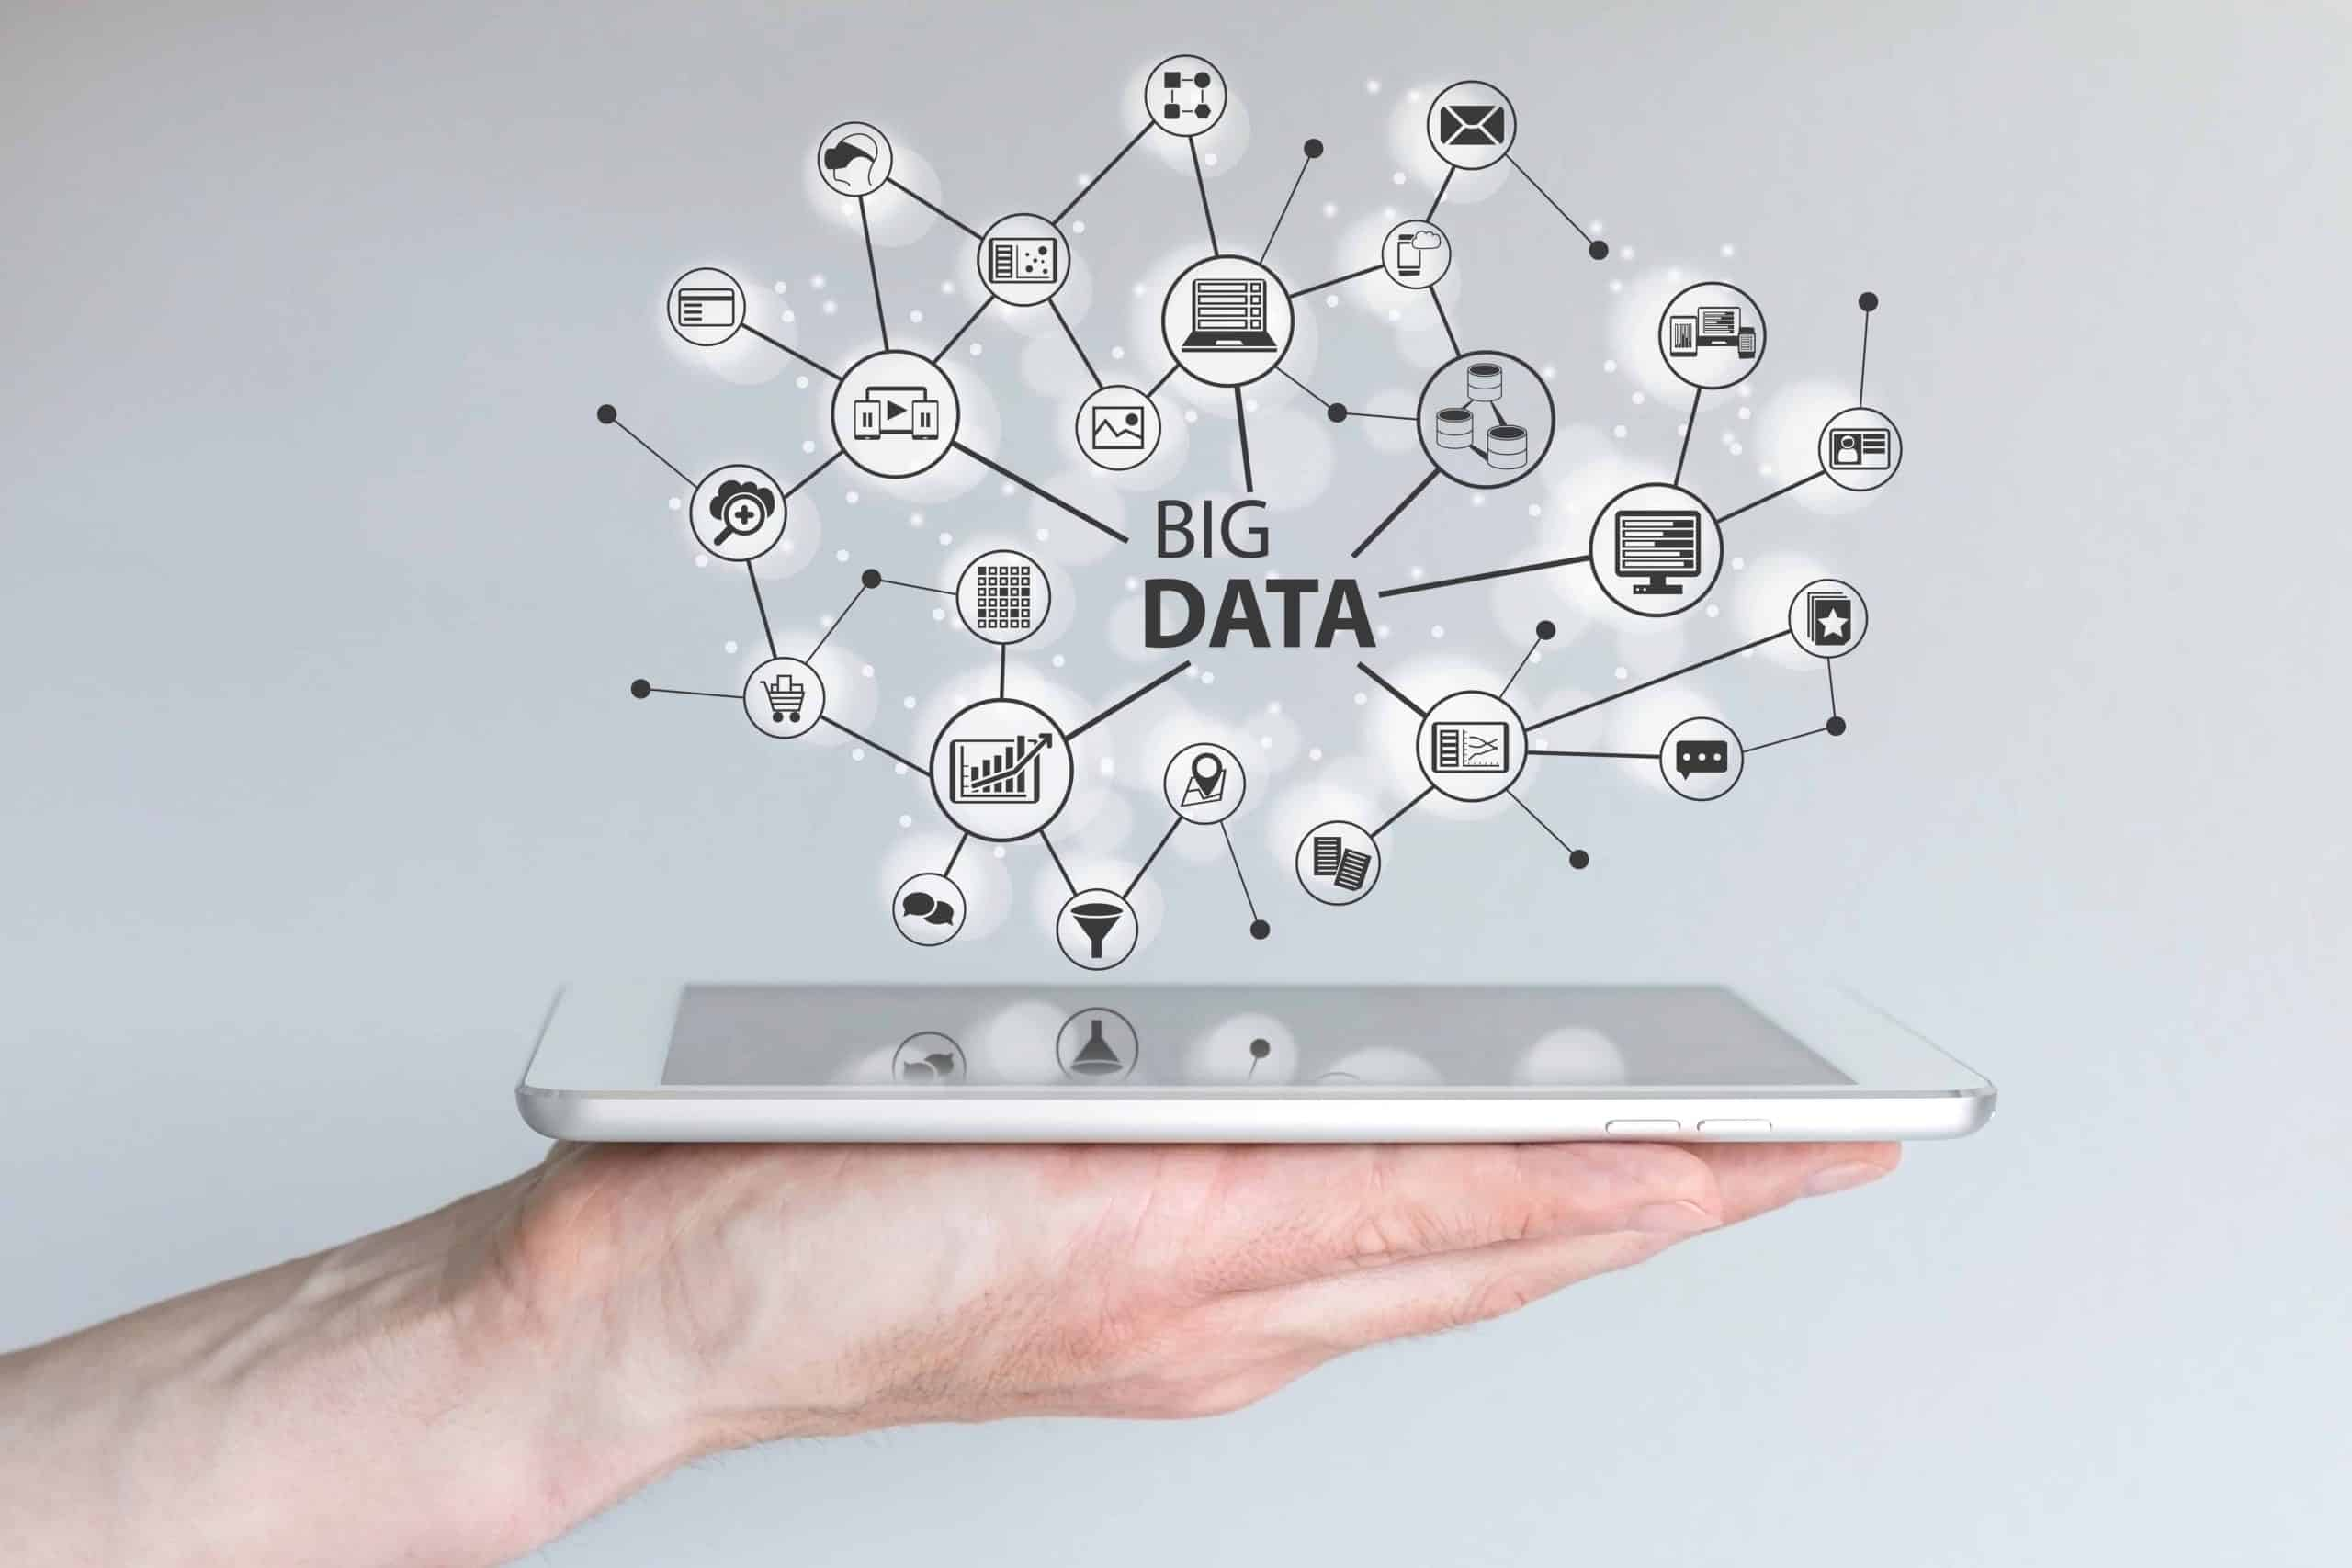 Big Data - How can Master Data help to get the best out of Big Data?